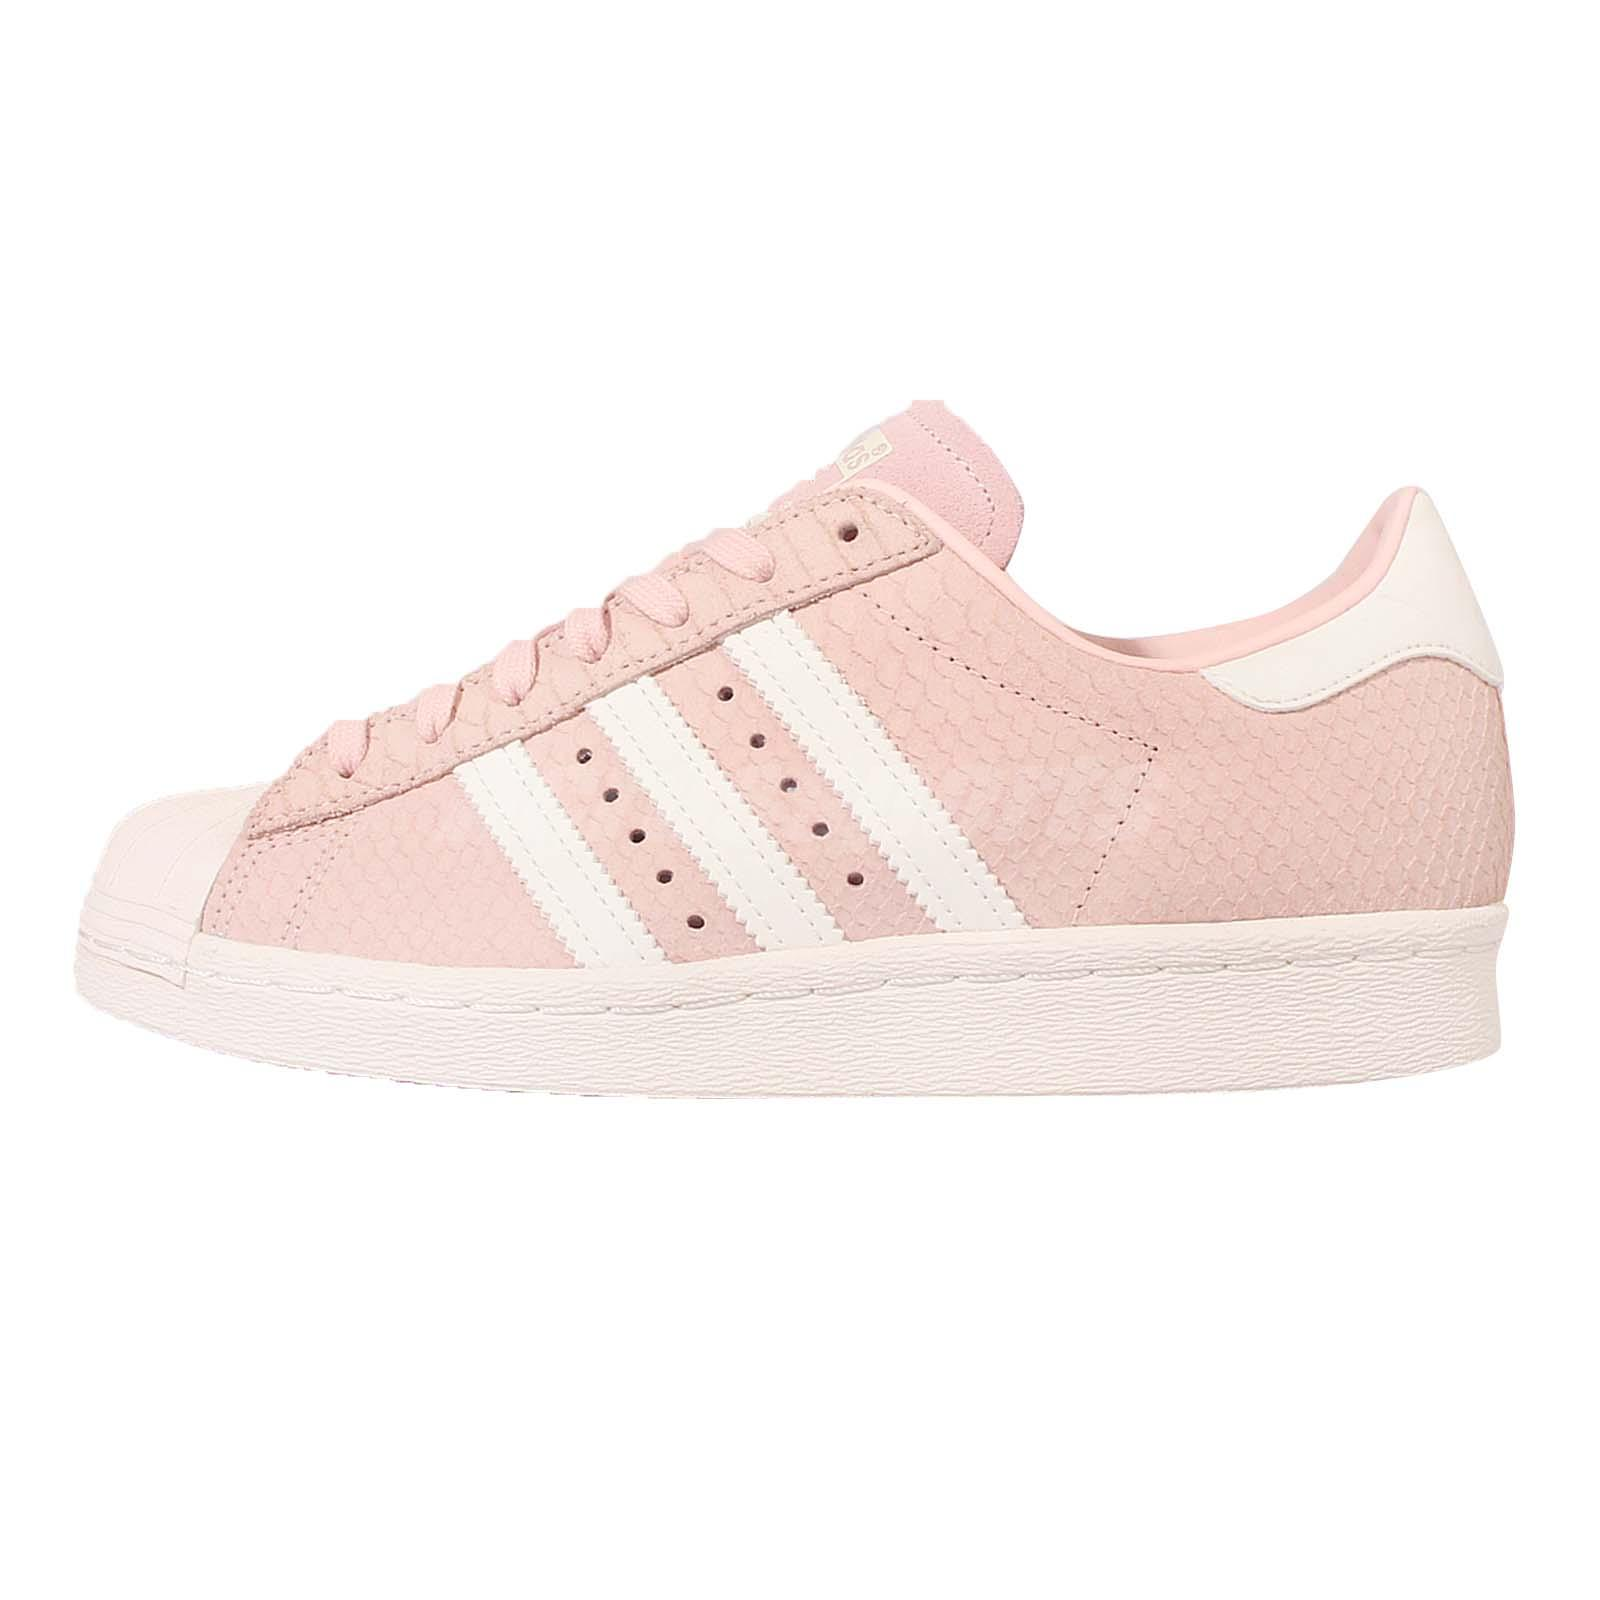 Adidas Superstars 80s Blush Pink